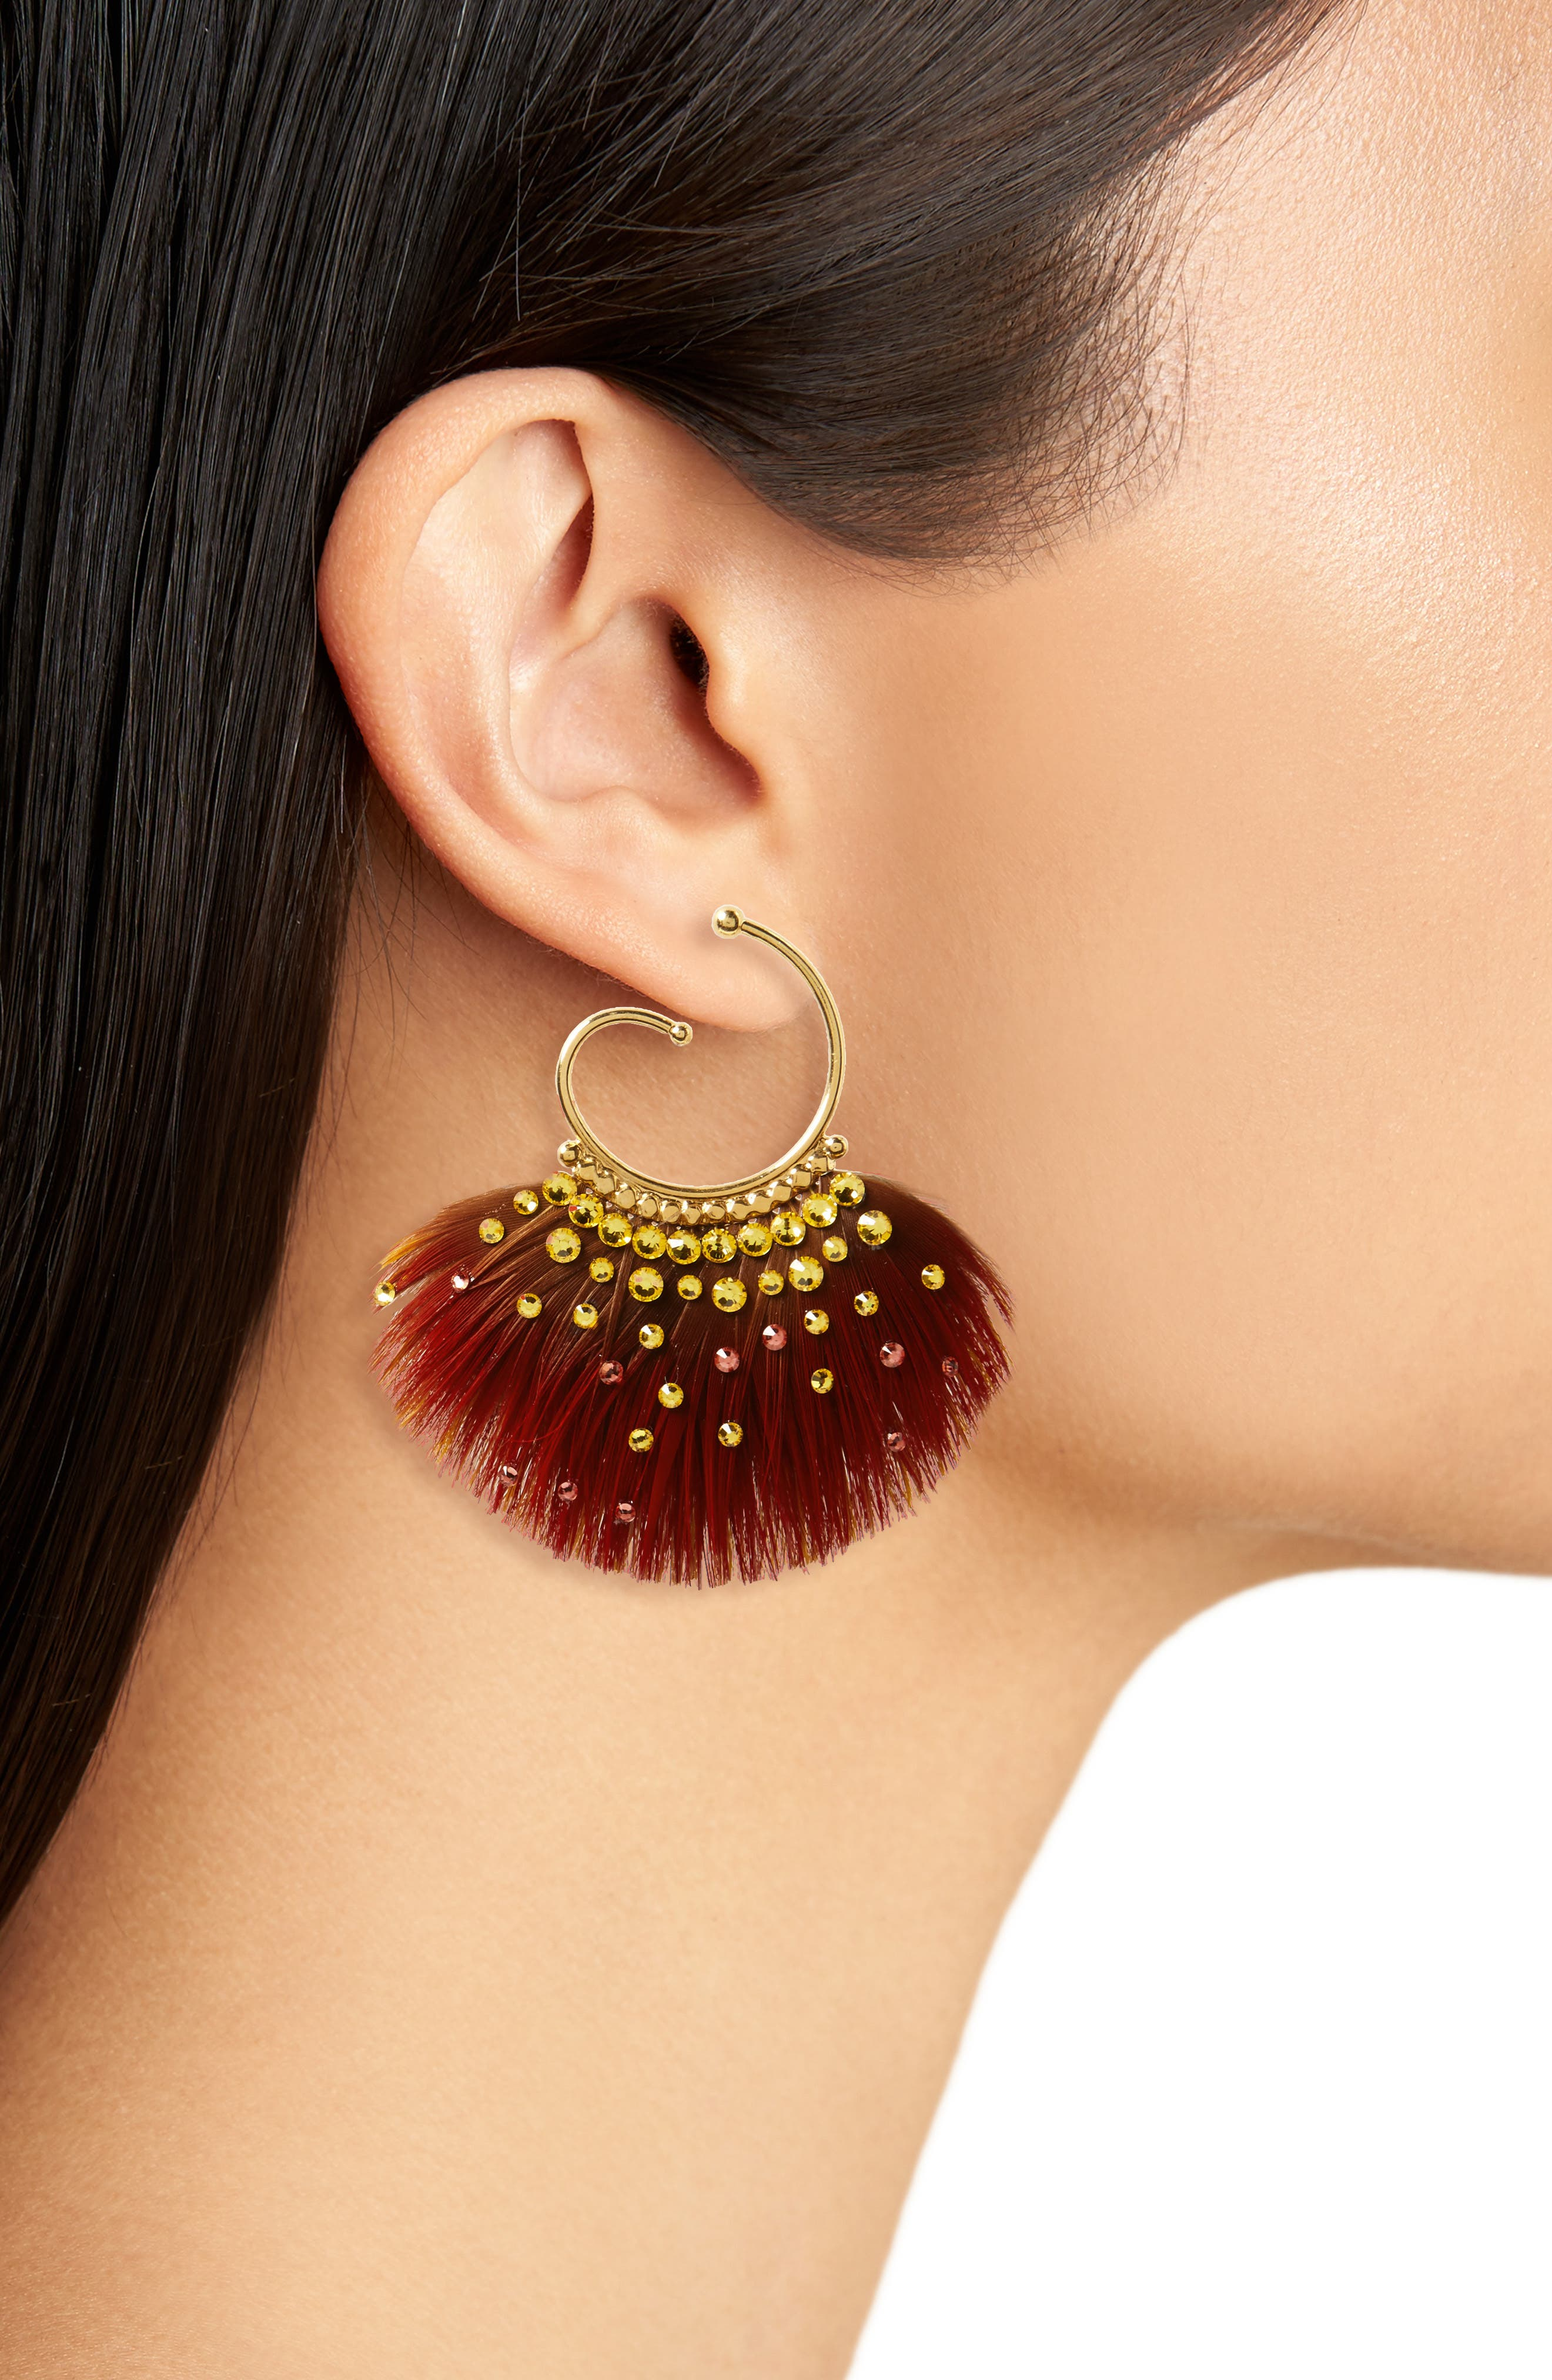 Buzios Small Feather Earrings,                             Alternate thumbnail 2, color,                             800